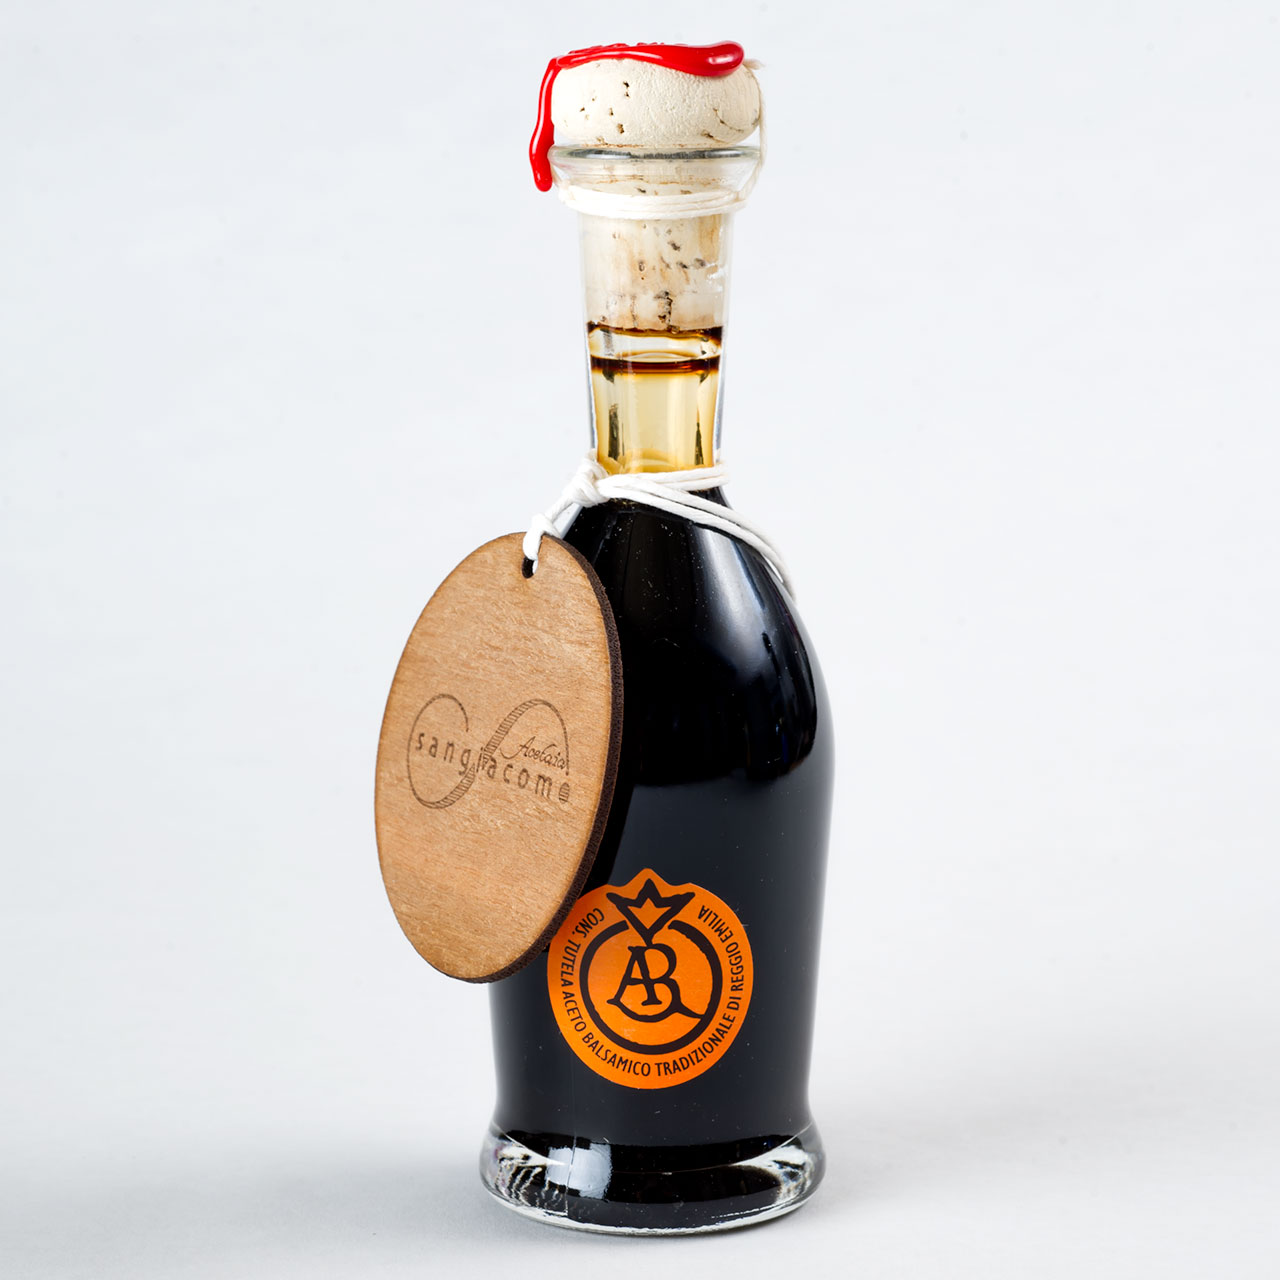 San Giacomo Balsamico Traditionale 12-yr Red Seal - in Gourmet